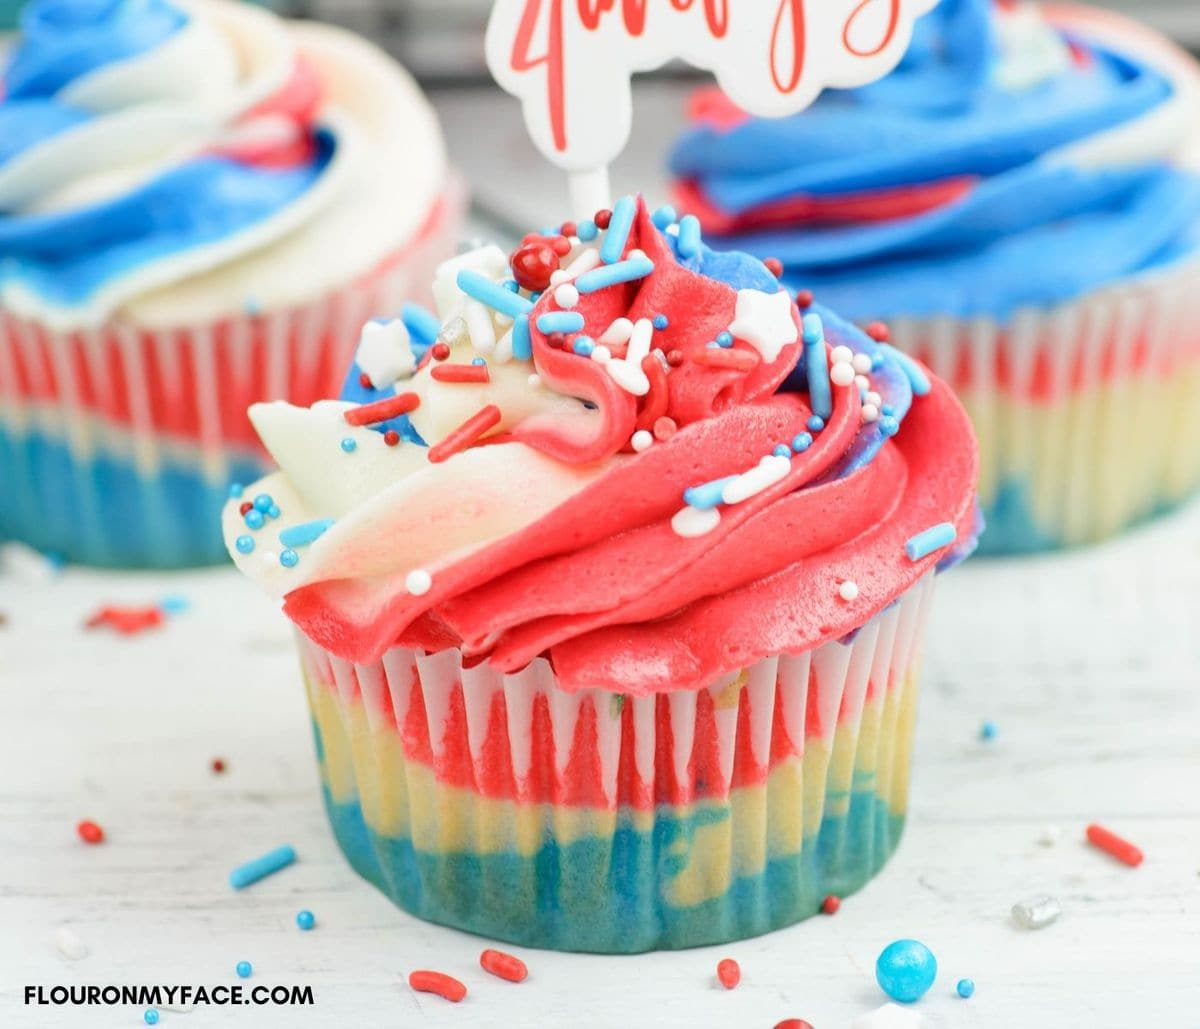 Closeup image of red, white and blue cupcakes decorated for the fourth of July.